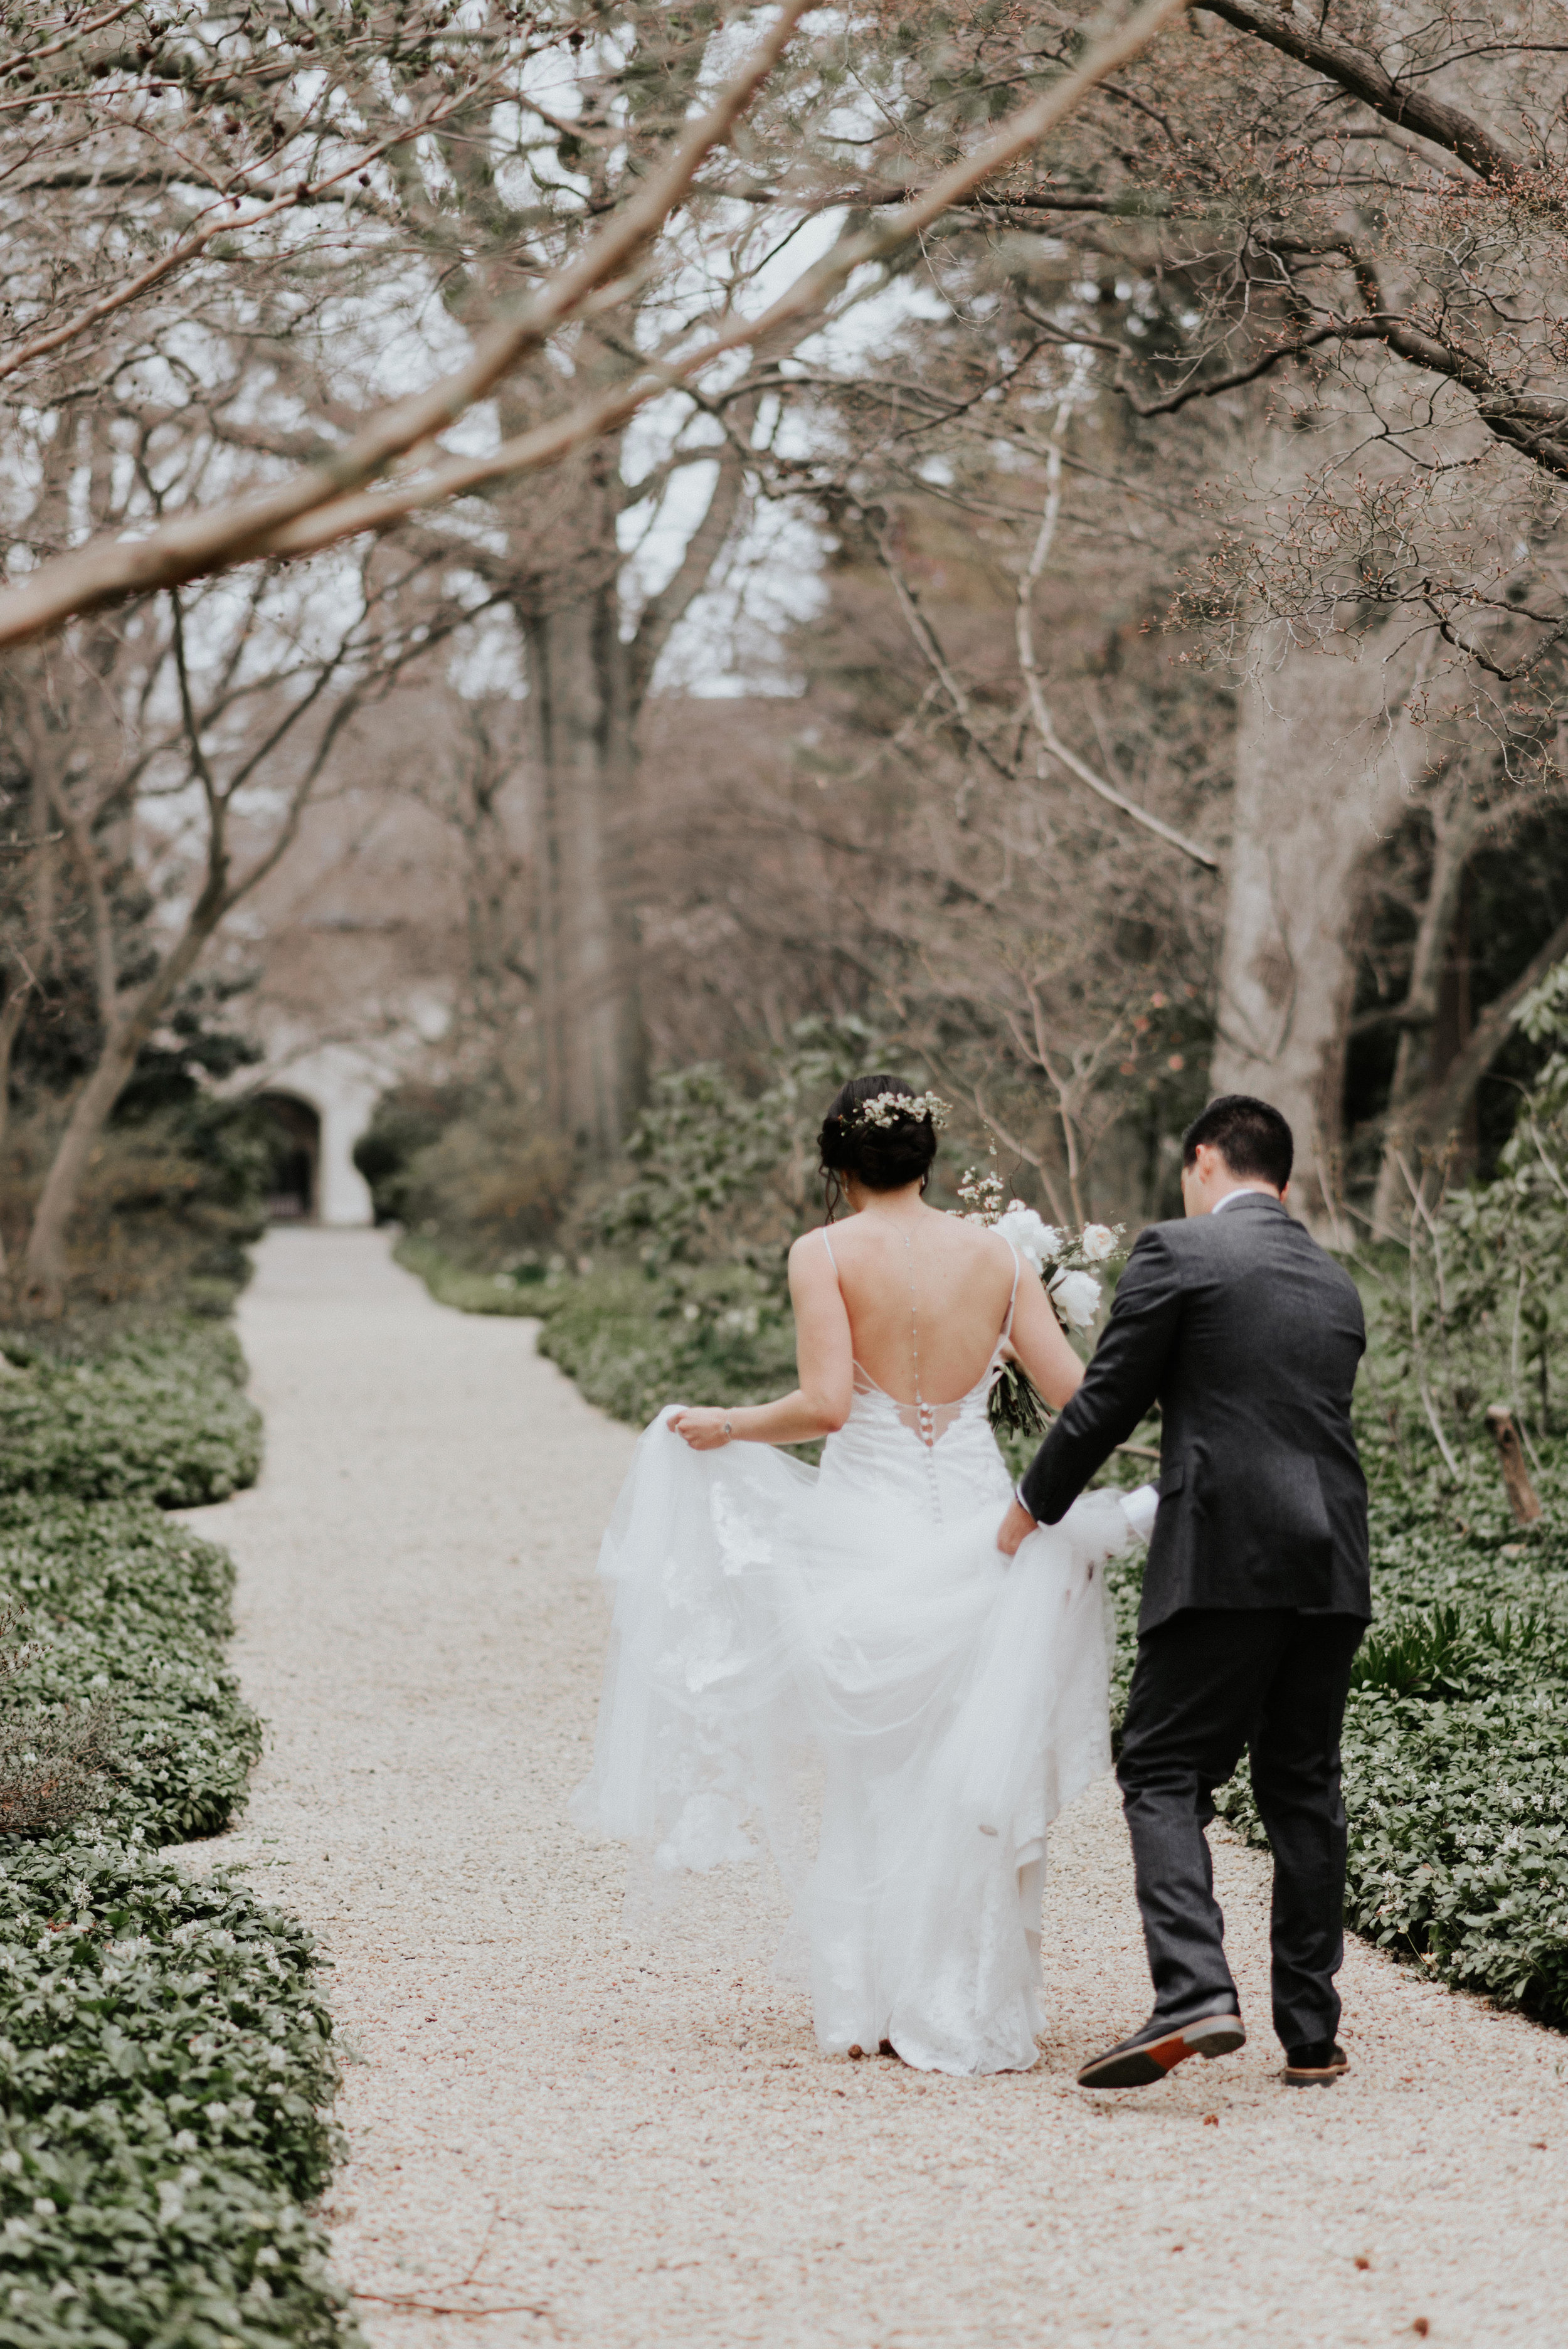 Bloss-Royalton at Roslyn Counttry Club-Planting Fields Arboretum-Long Island-Wedding-Photographer-01134.jpg